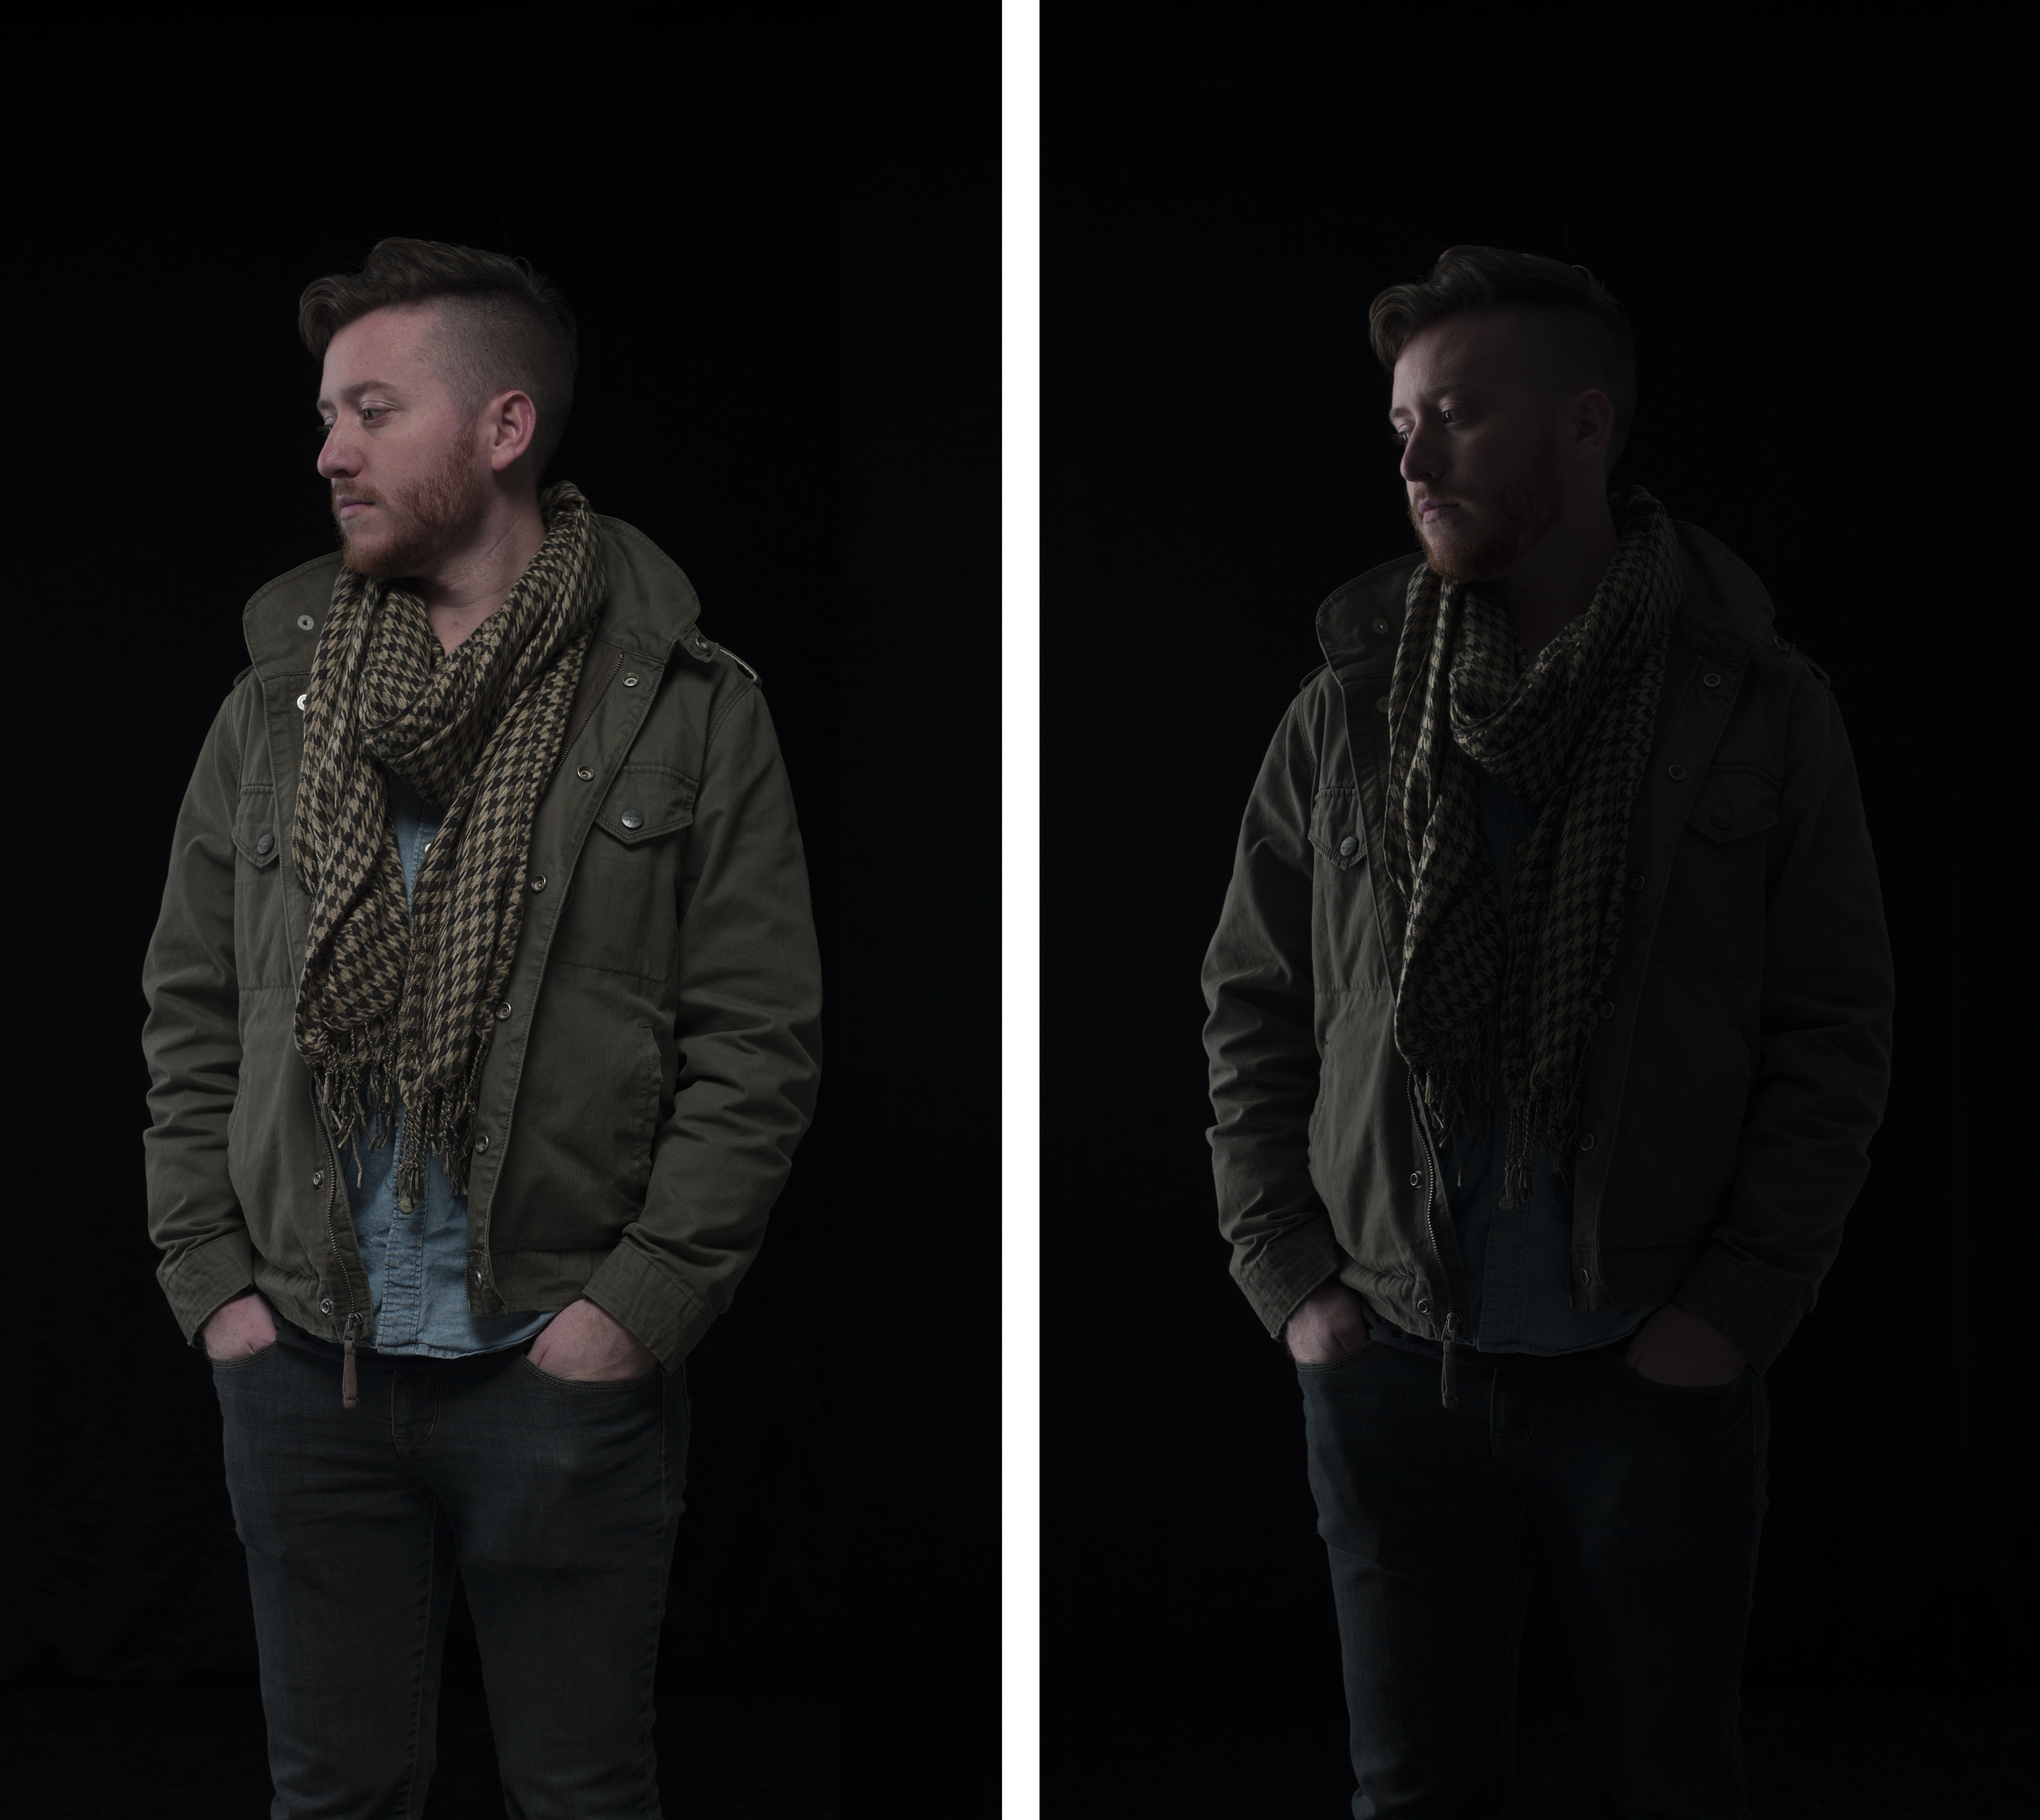 The left image is the very first shot I took, and the right is the second shot takenwith just one light on.